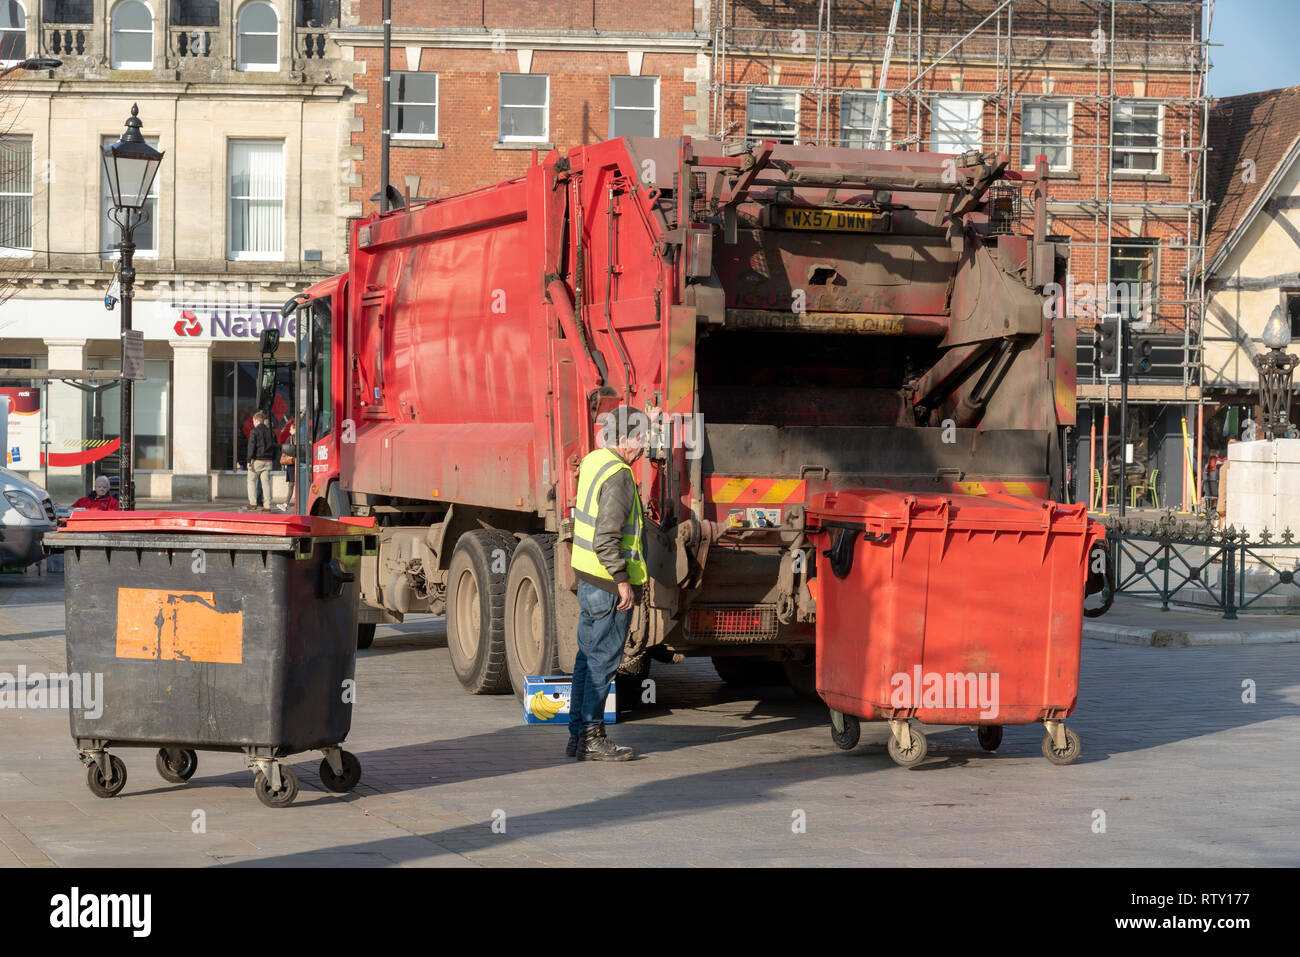 Salisbury, Wiltshire, England, UK. February 2019. Operative loading a commercial size red refuse bin into a truck in the city centre. - Stock Image